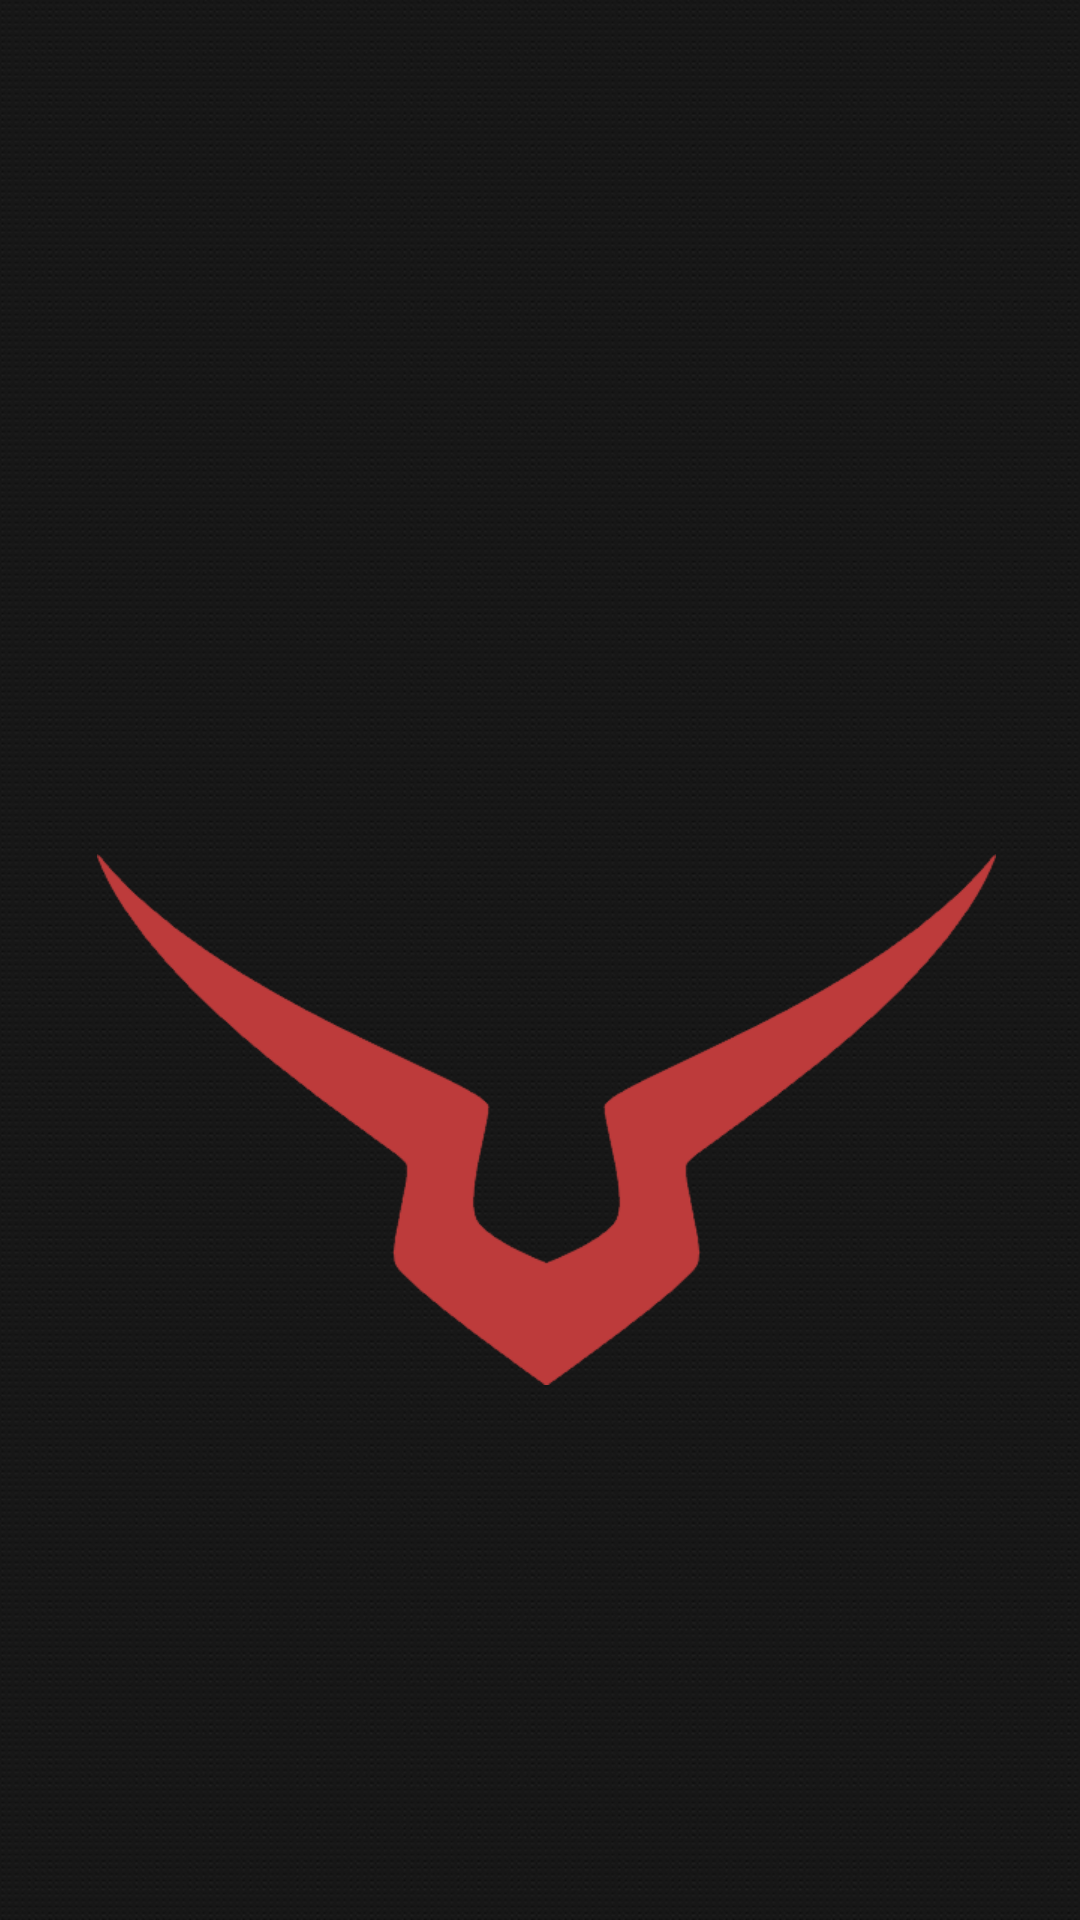 1080x1920 Wallpapers – MIUI